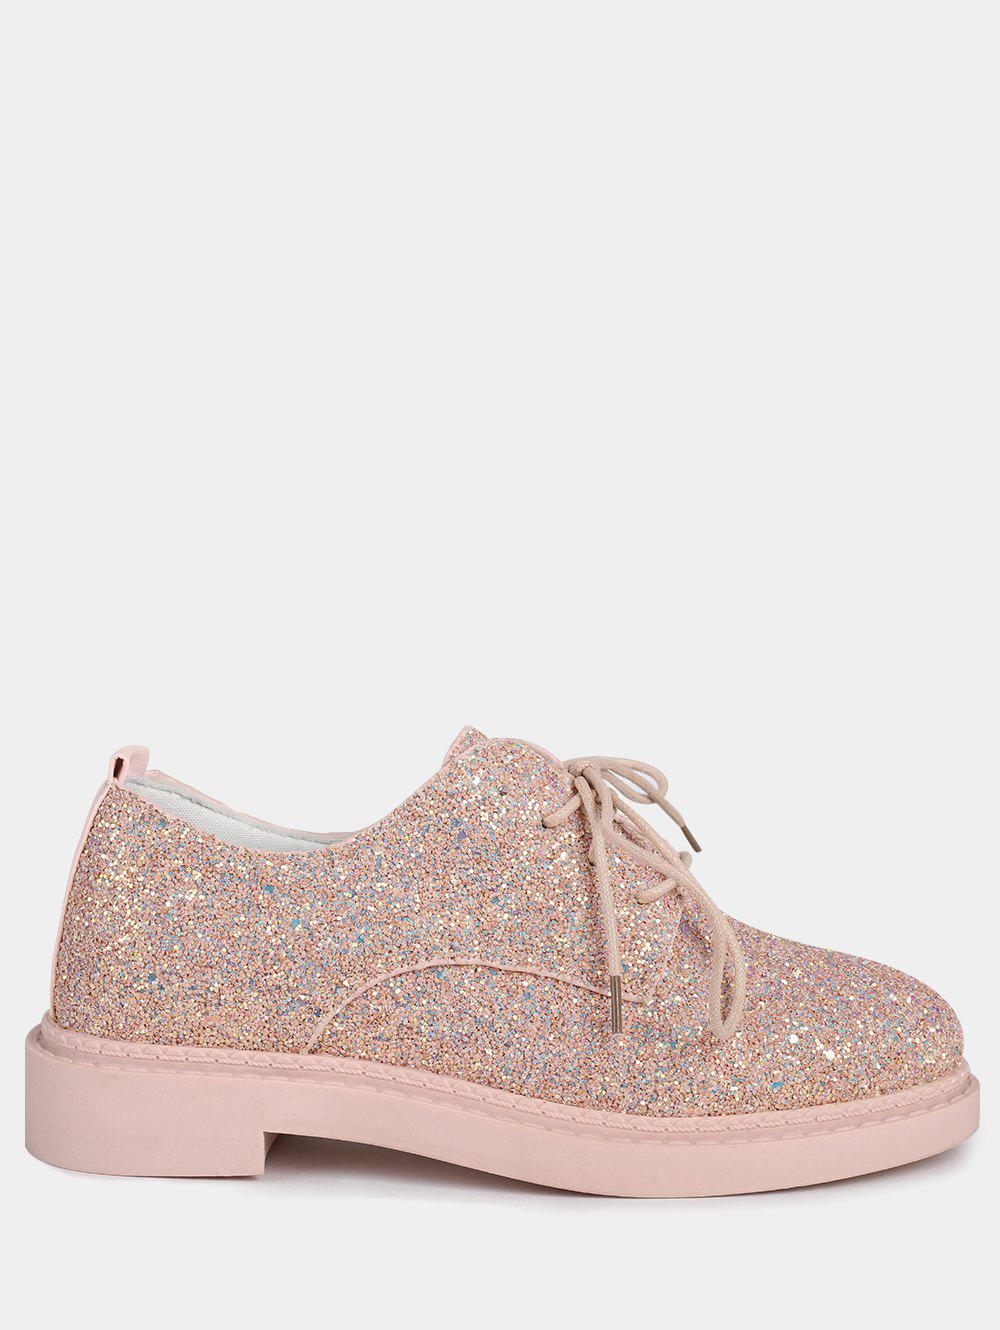 Discount Tie Up Low Top Glitter Flat Shoes